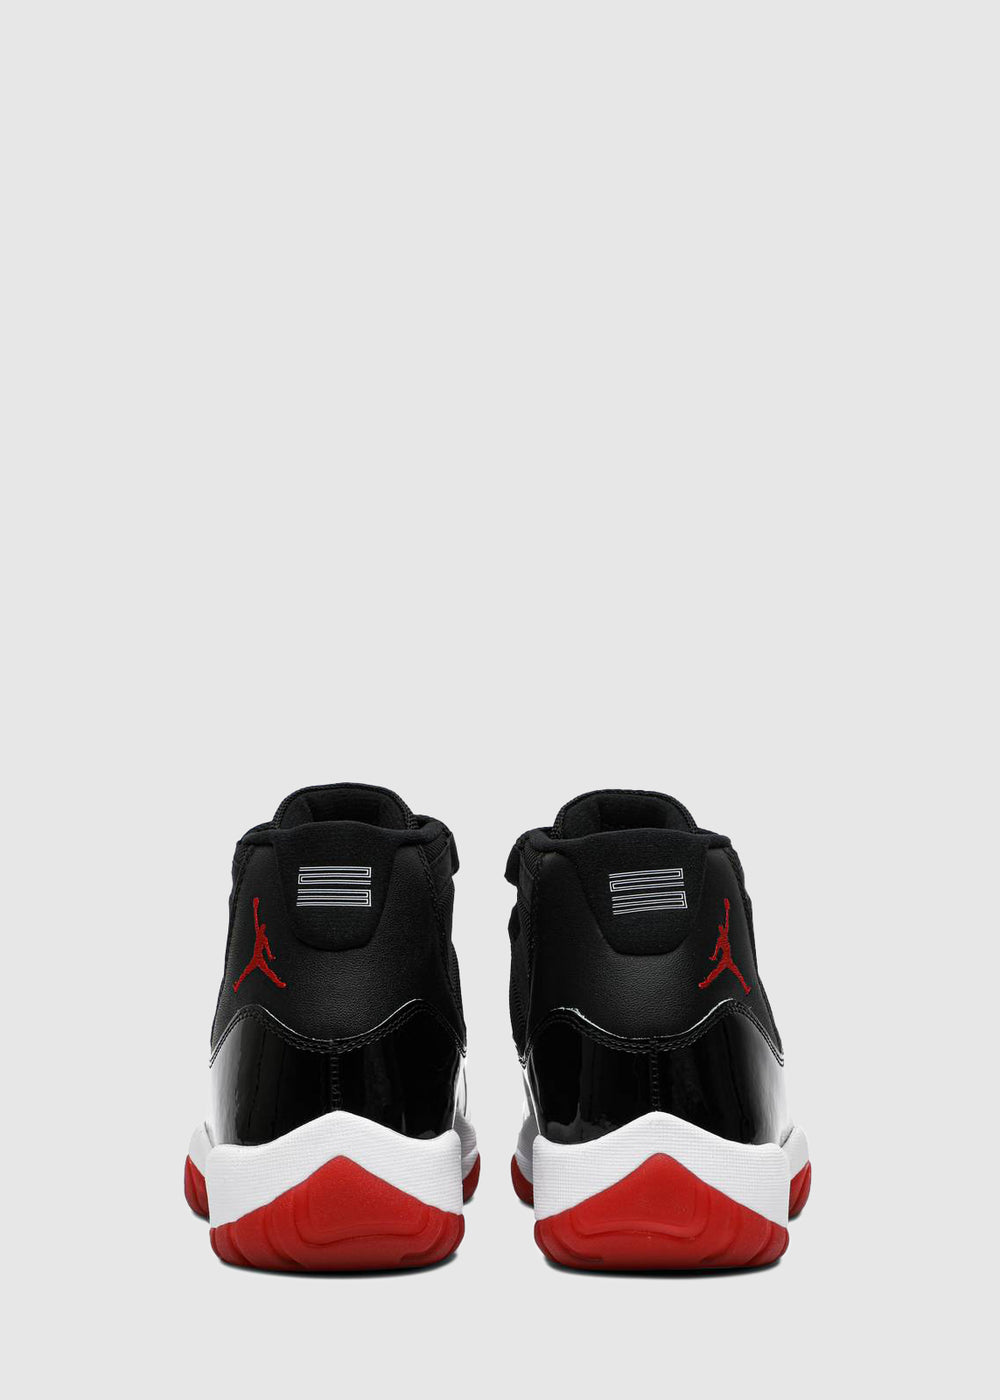 jordan-air-jordan-11-bred-black-4